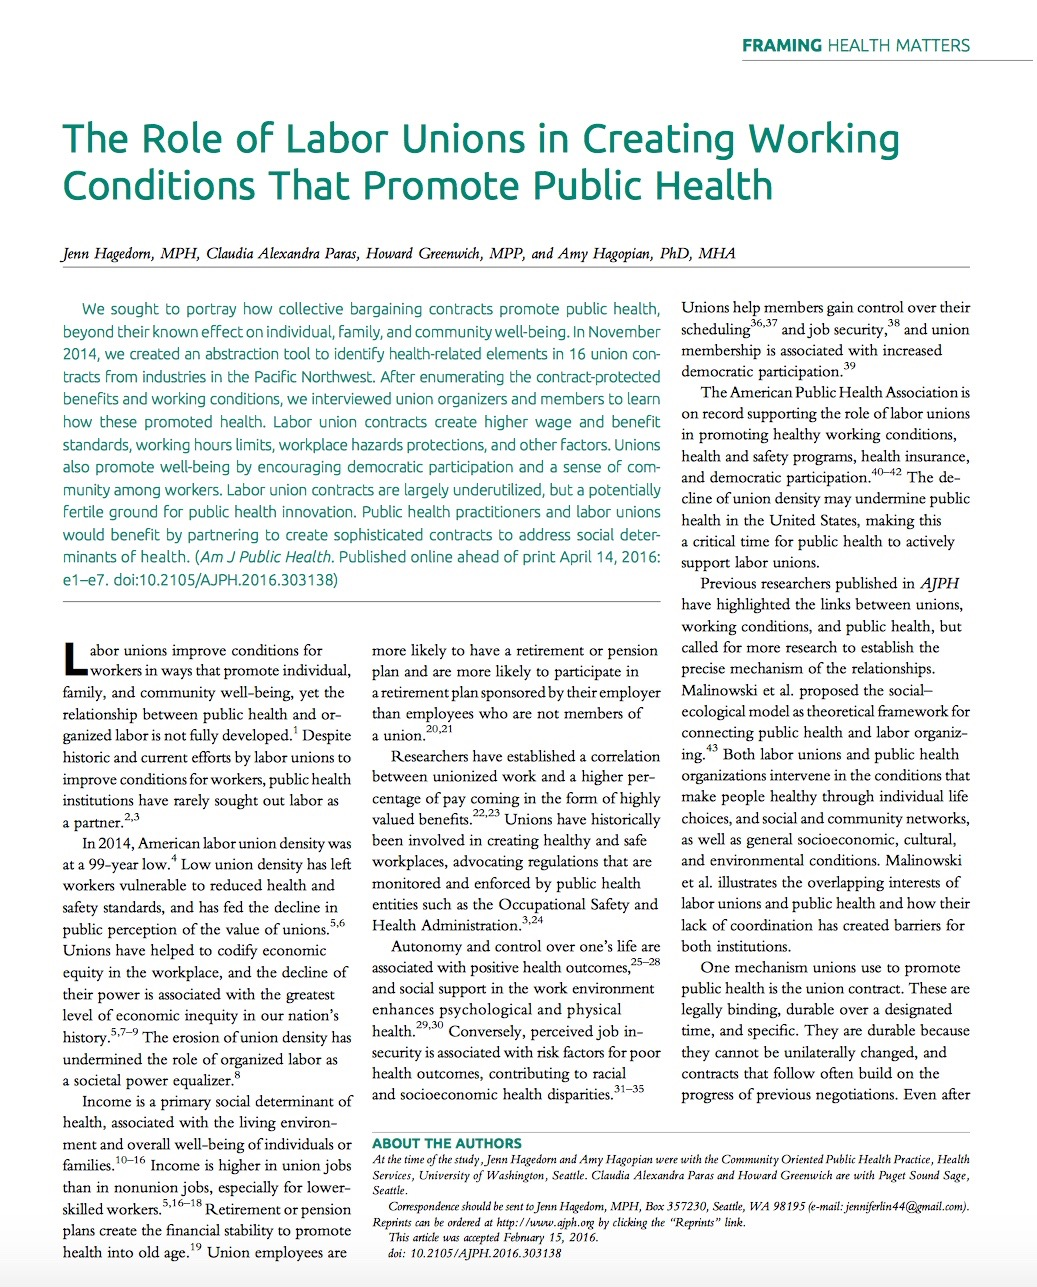 The Role of Labor Unions in Creating Working Conditions That Promote Public Health